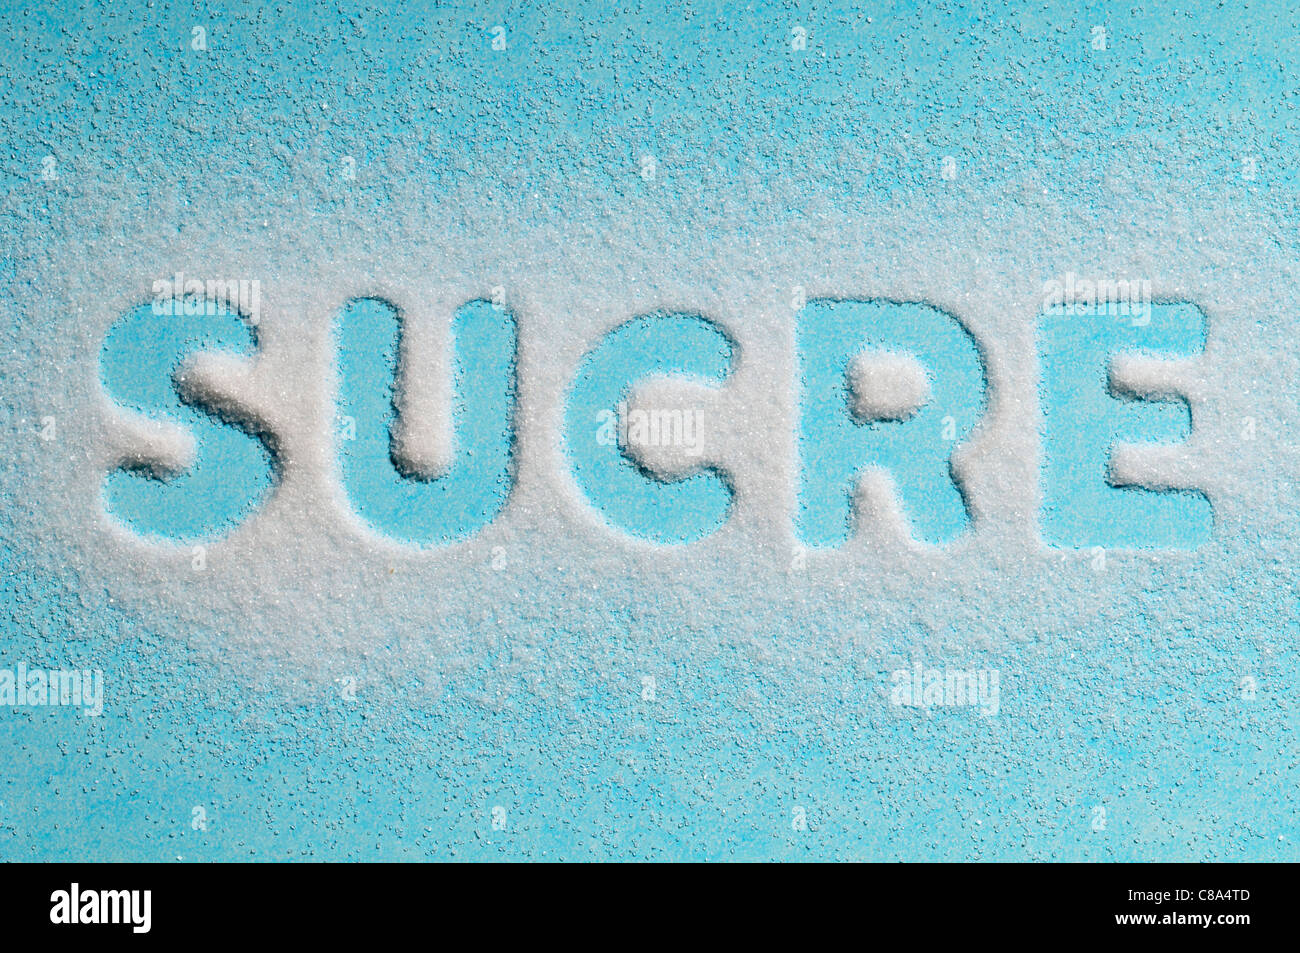 The word 'sucre' written with sugar - Stock Image